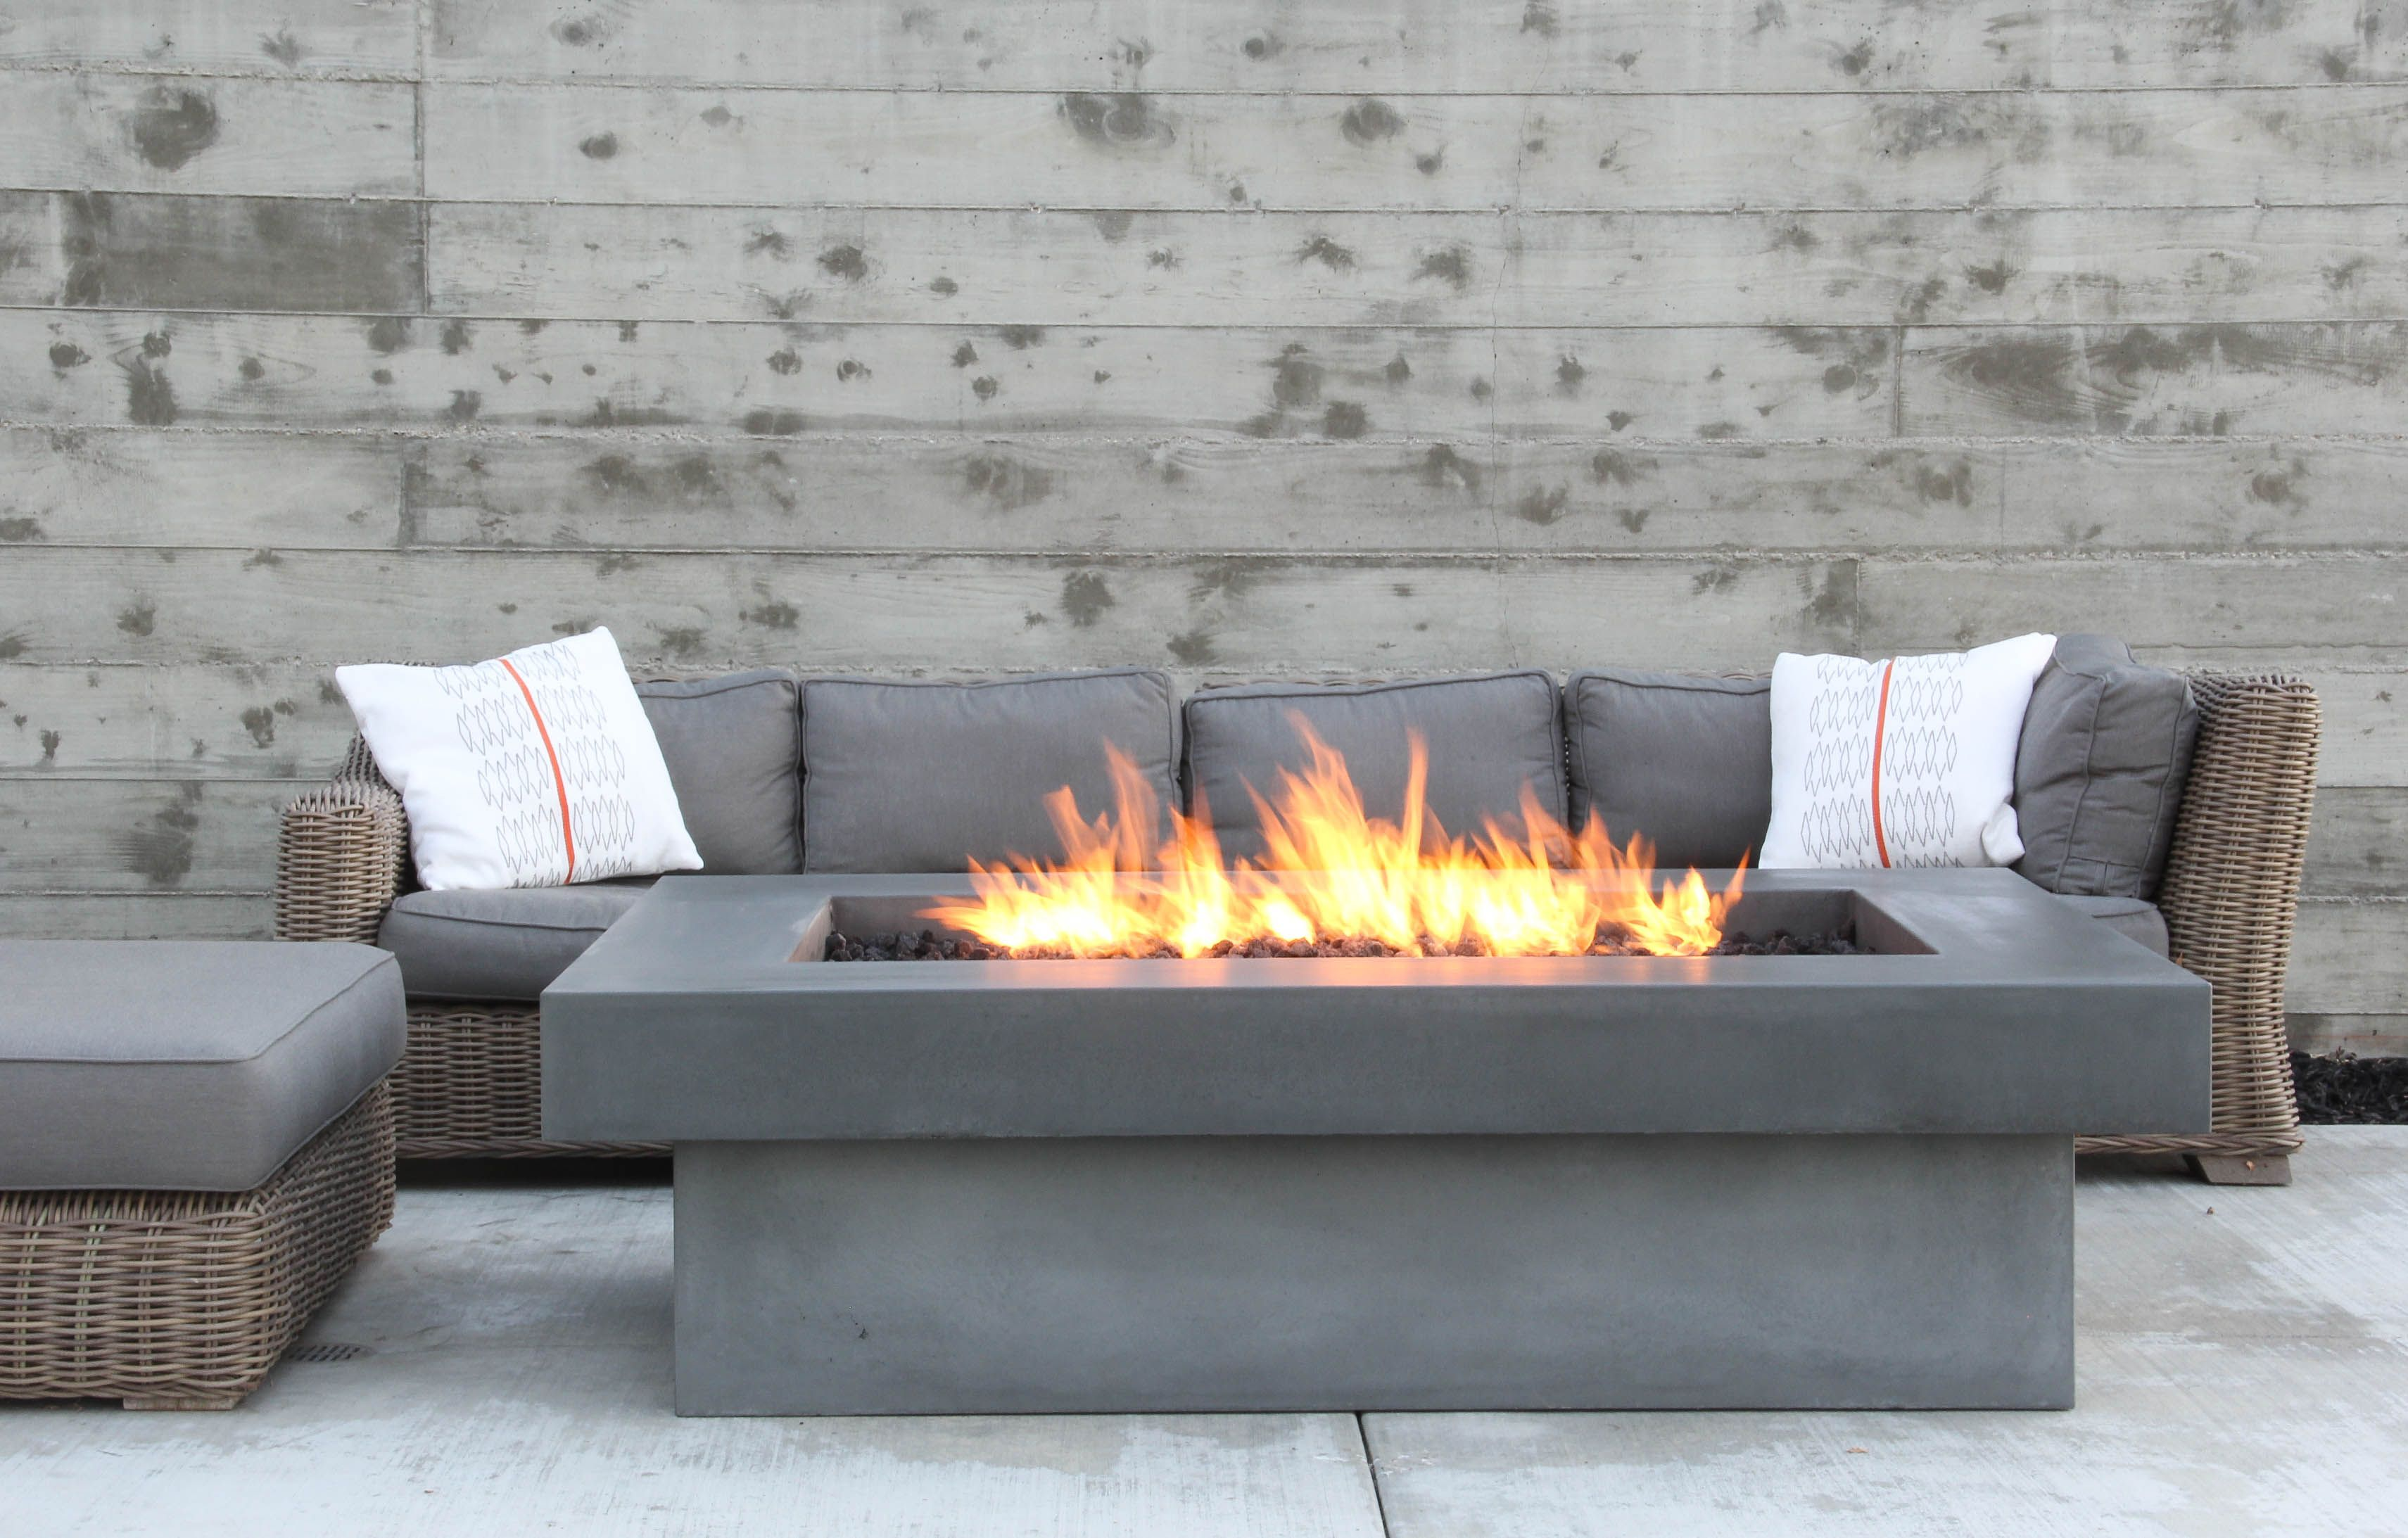 c6a7210a0b86dbbb3d0e375958f6c4e4 Top Result 50 Awesome Prefab Outdoor Fireplace Photography 2018 Hiw6